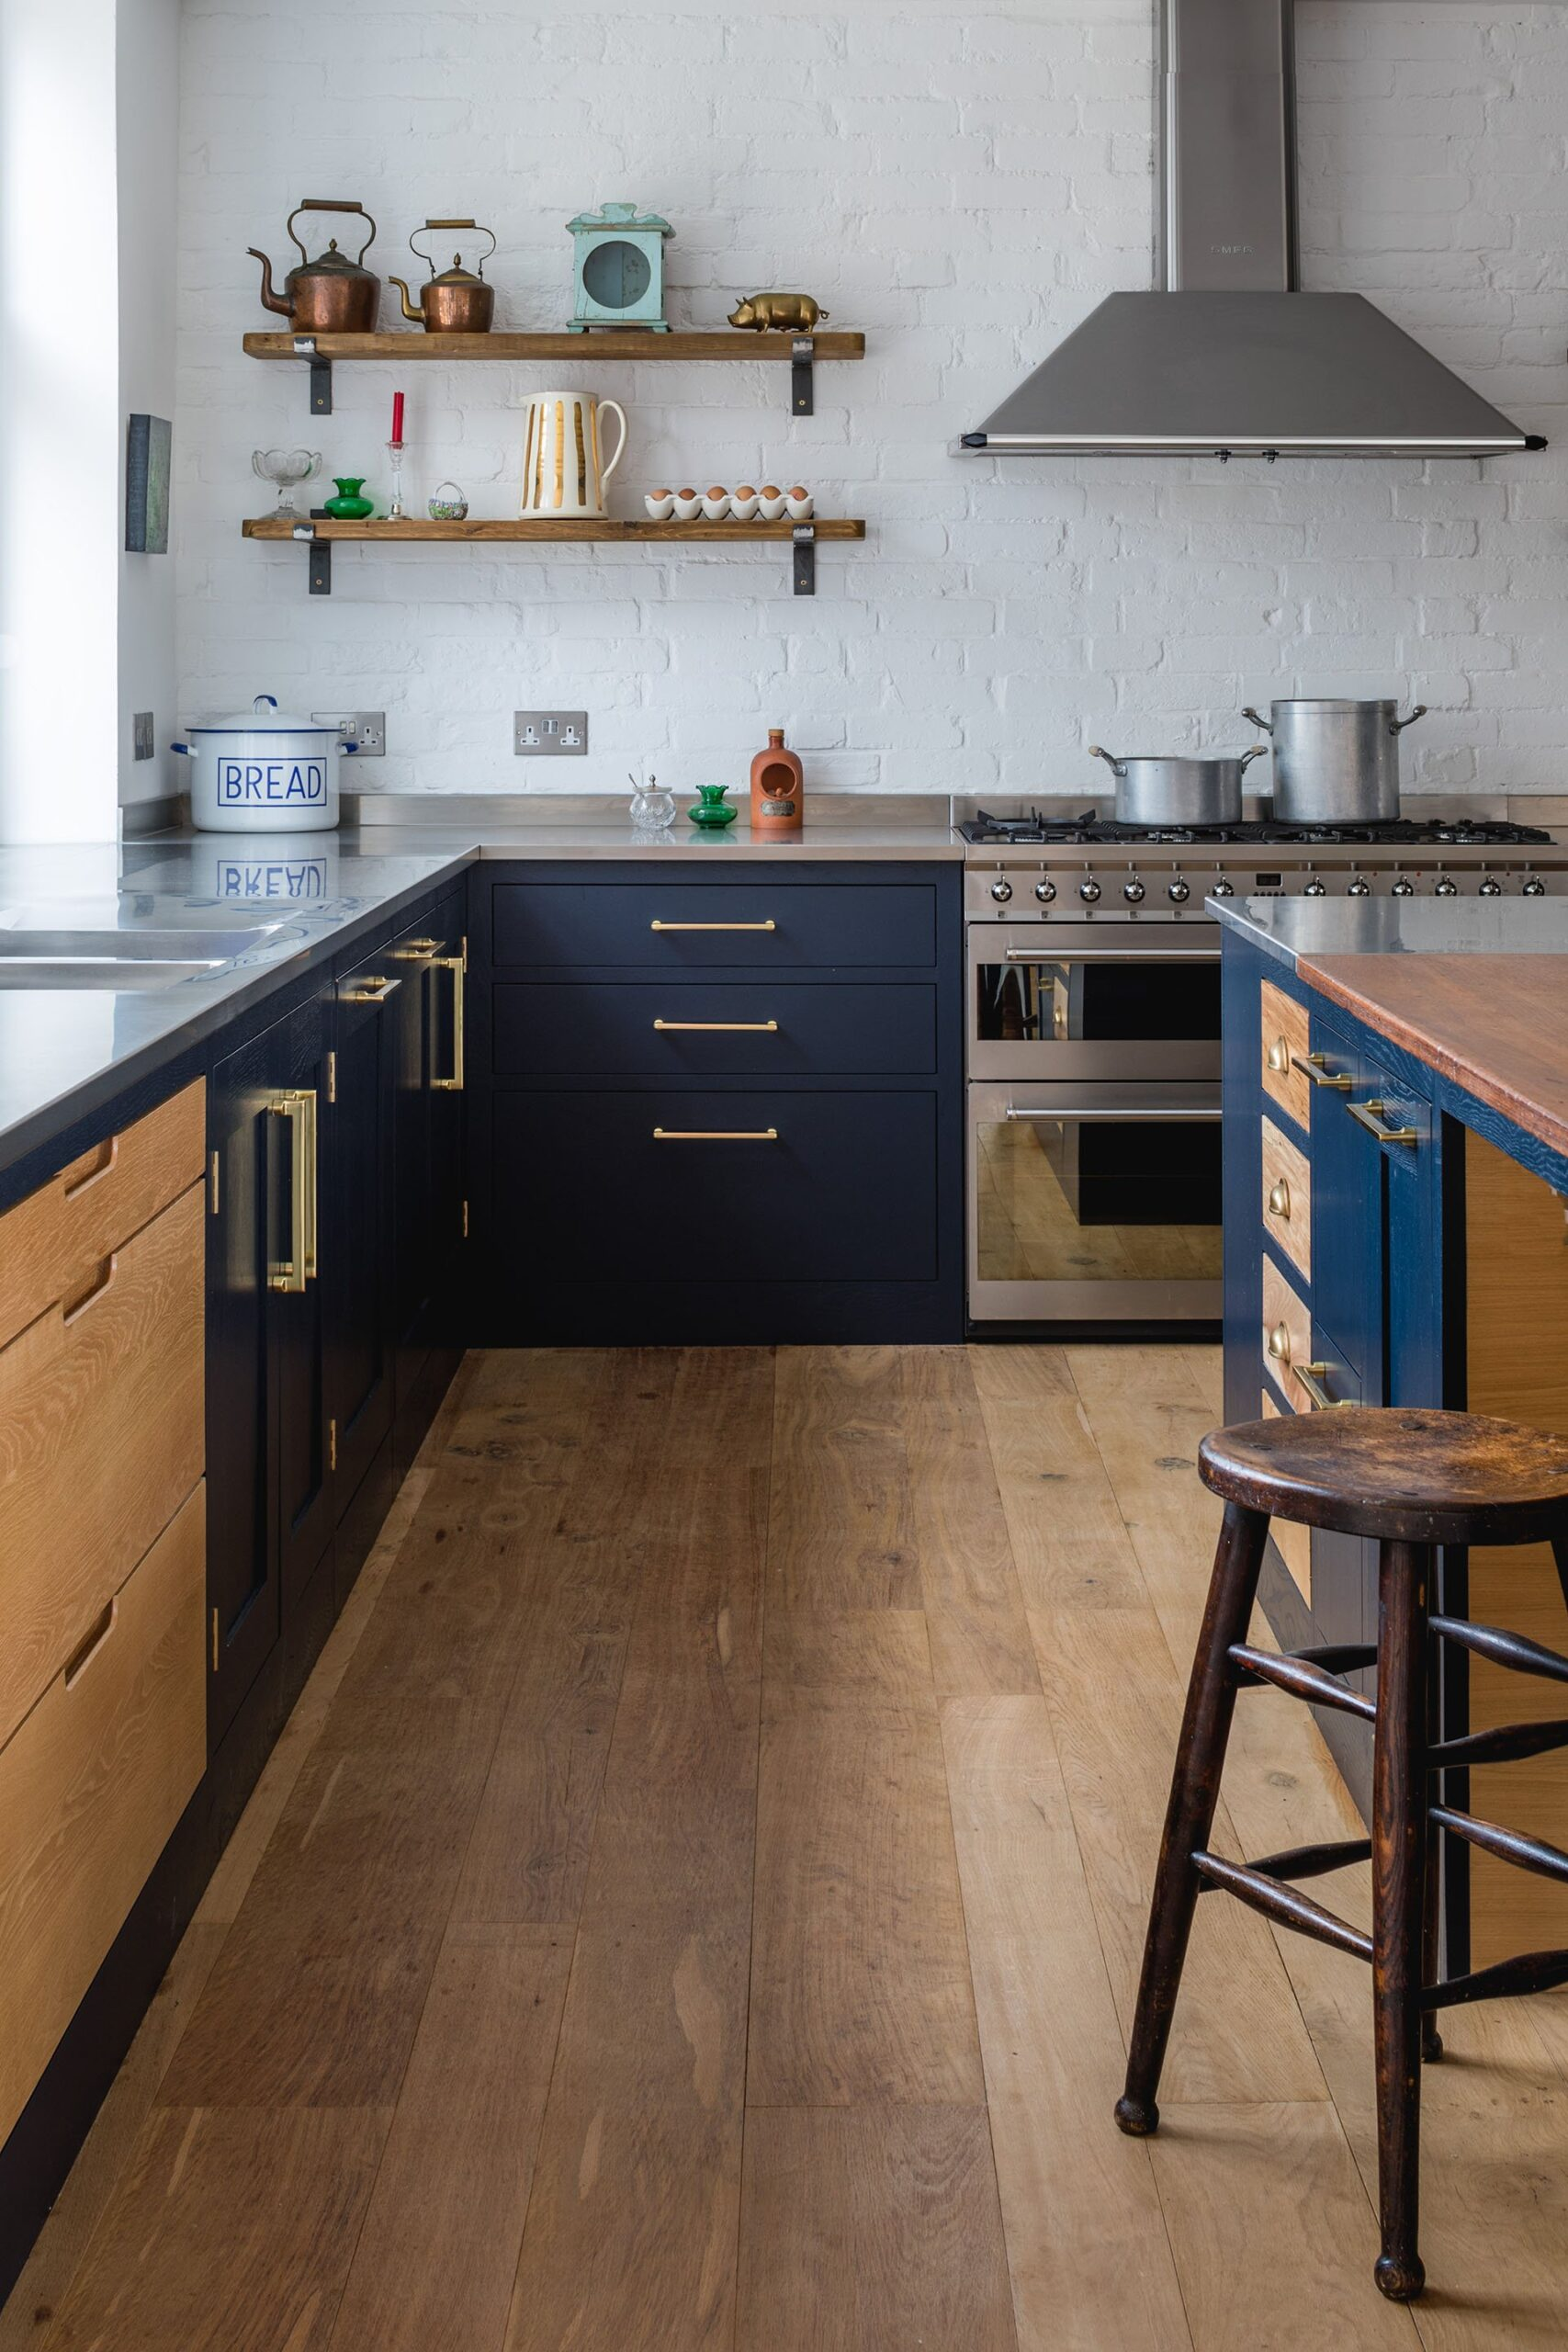 Eco Extension Shaker Kitchen with vintage wooden stool, stainless steel worktops and interesting timber drawers